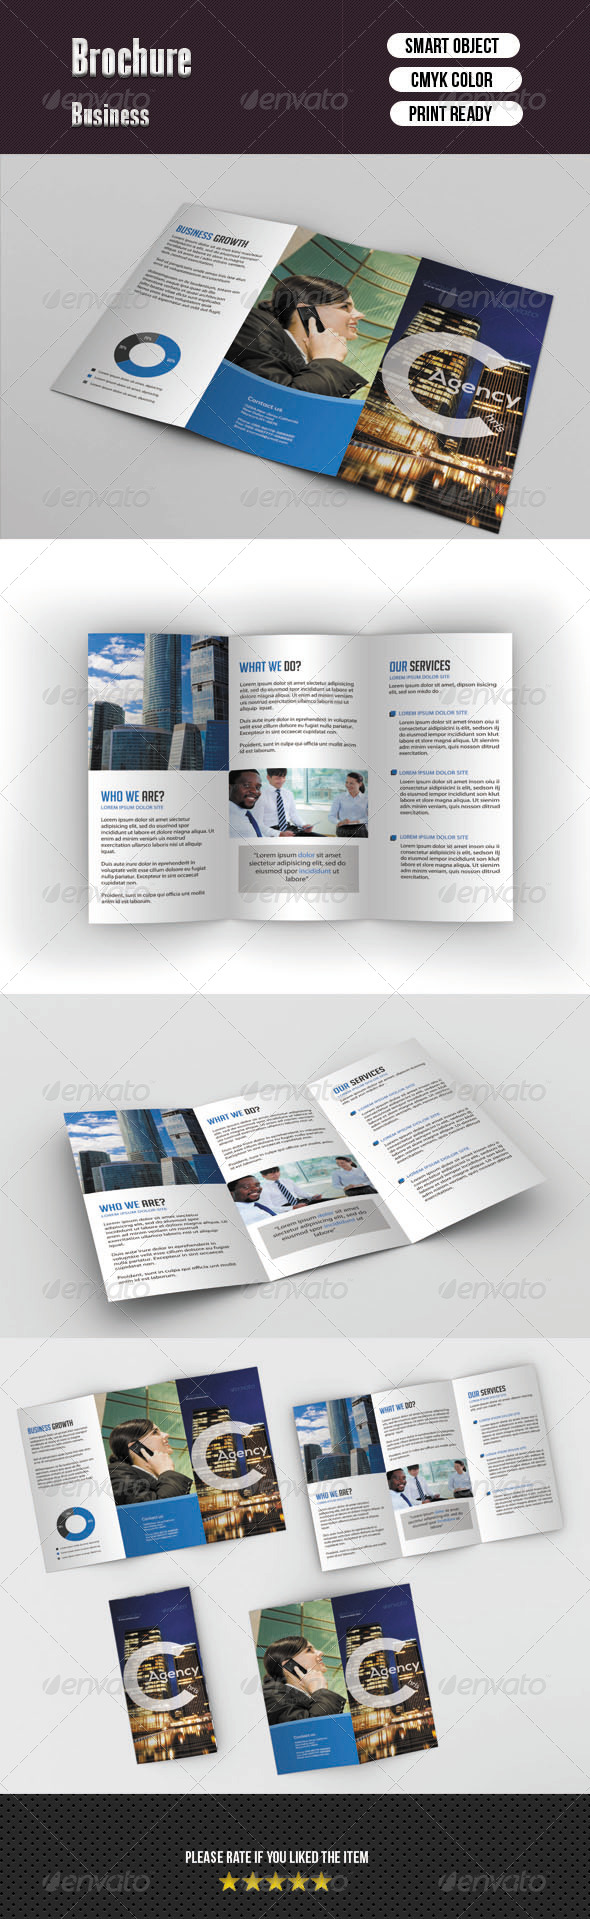 Tifold Brochure-Business - Corporate Brochures